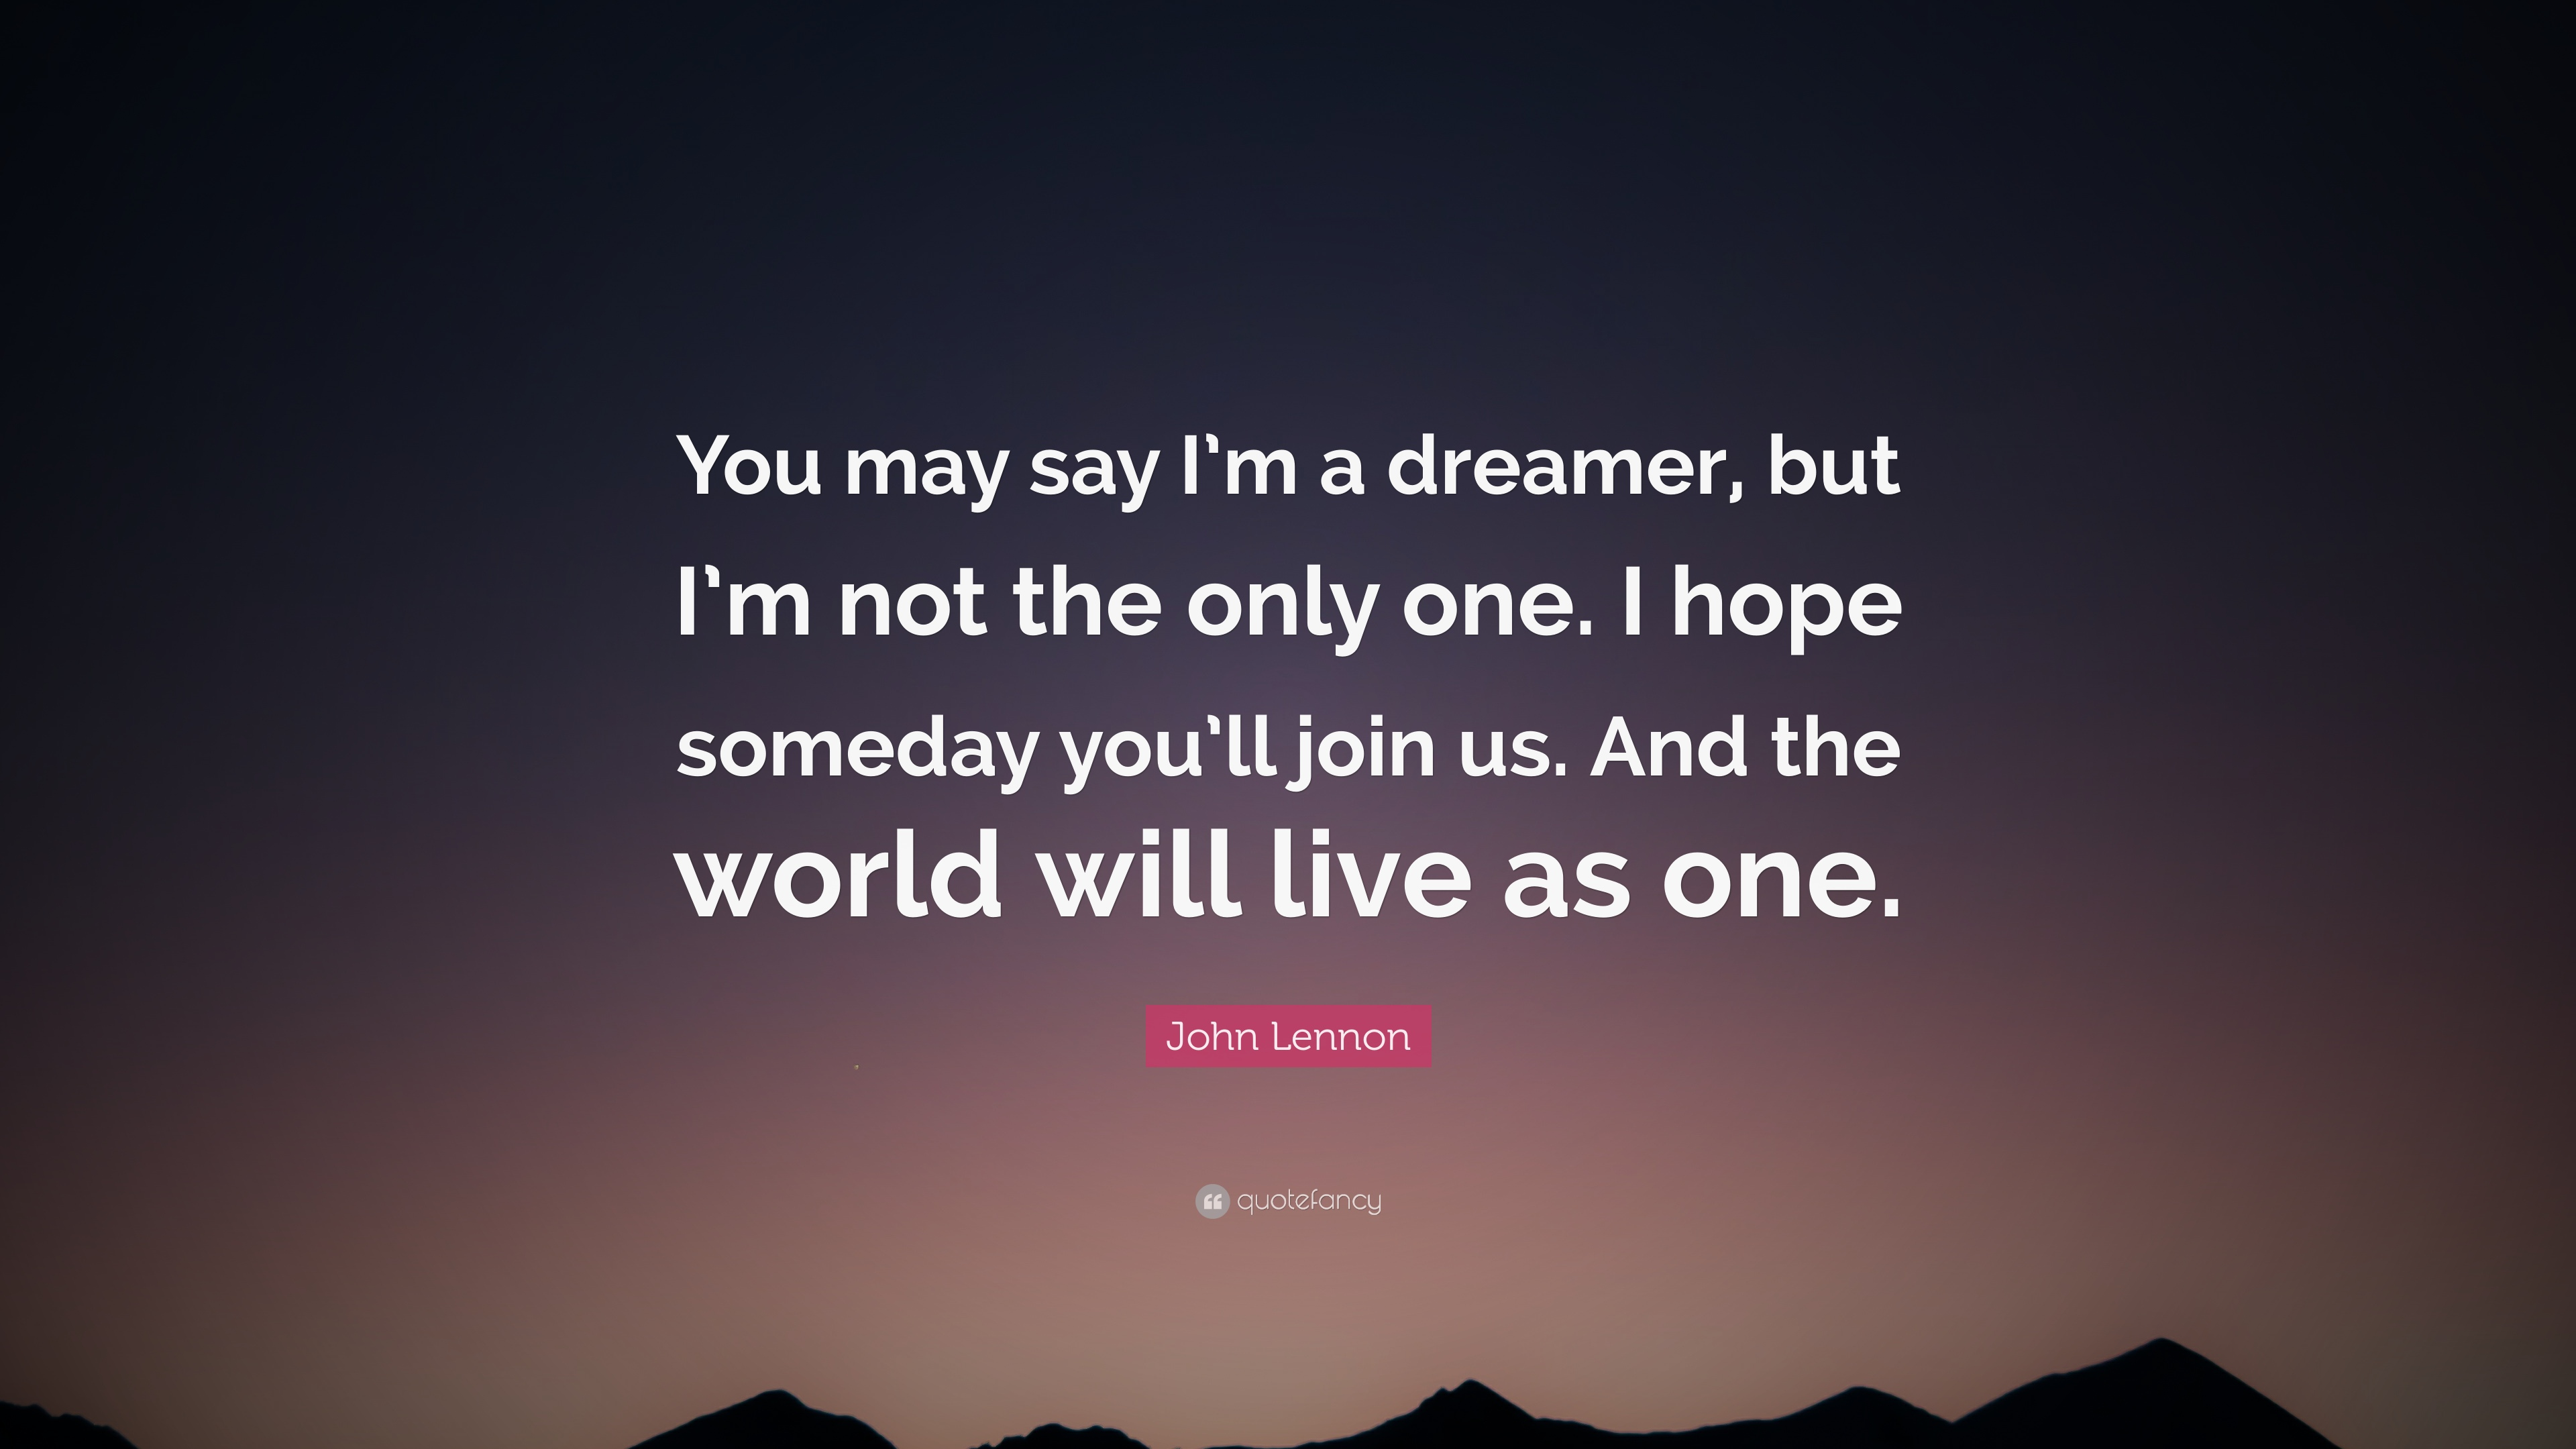 you may say i m a dreamer Imagine all the people living life in peace, you you may say i'm a dreamer but i' m not the only one i hope some day you'll join us and the world will be as one.